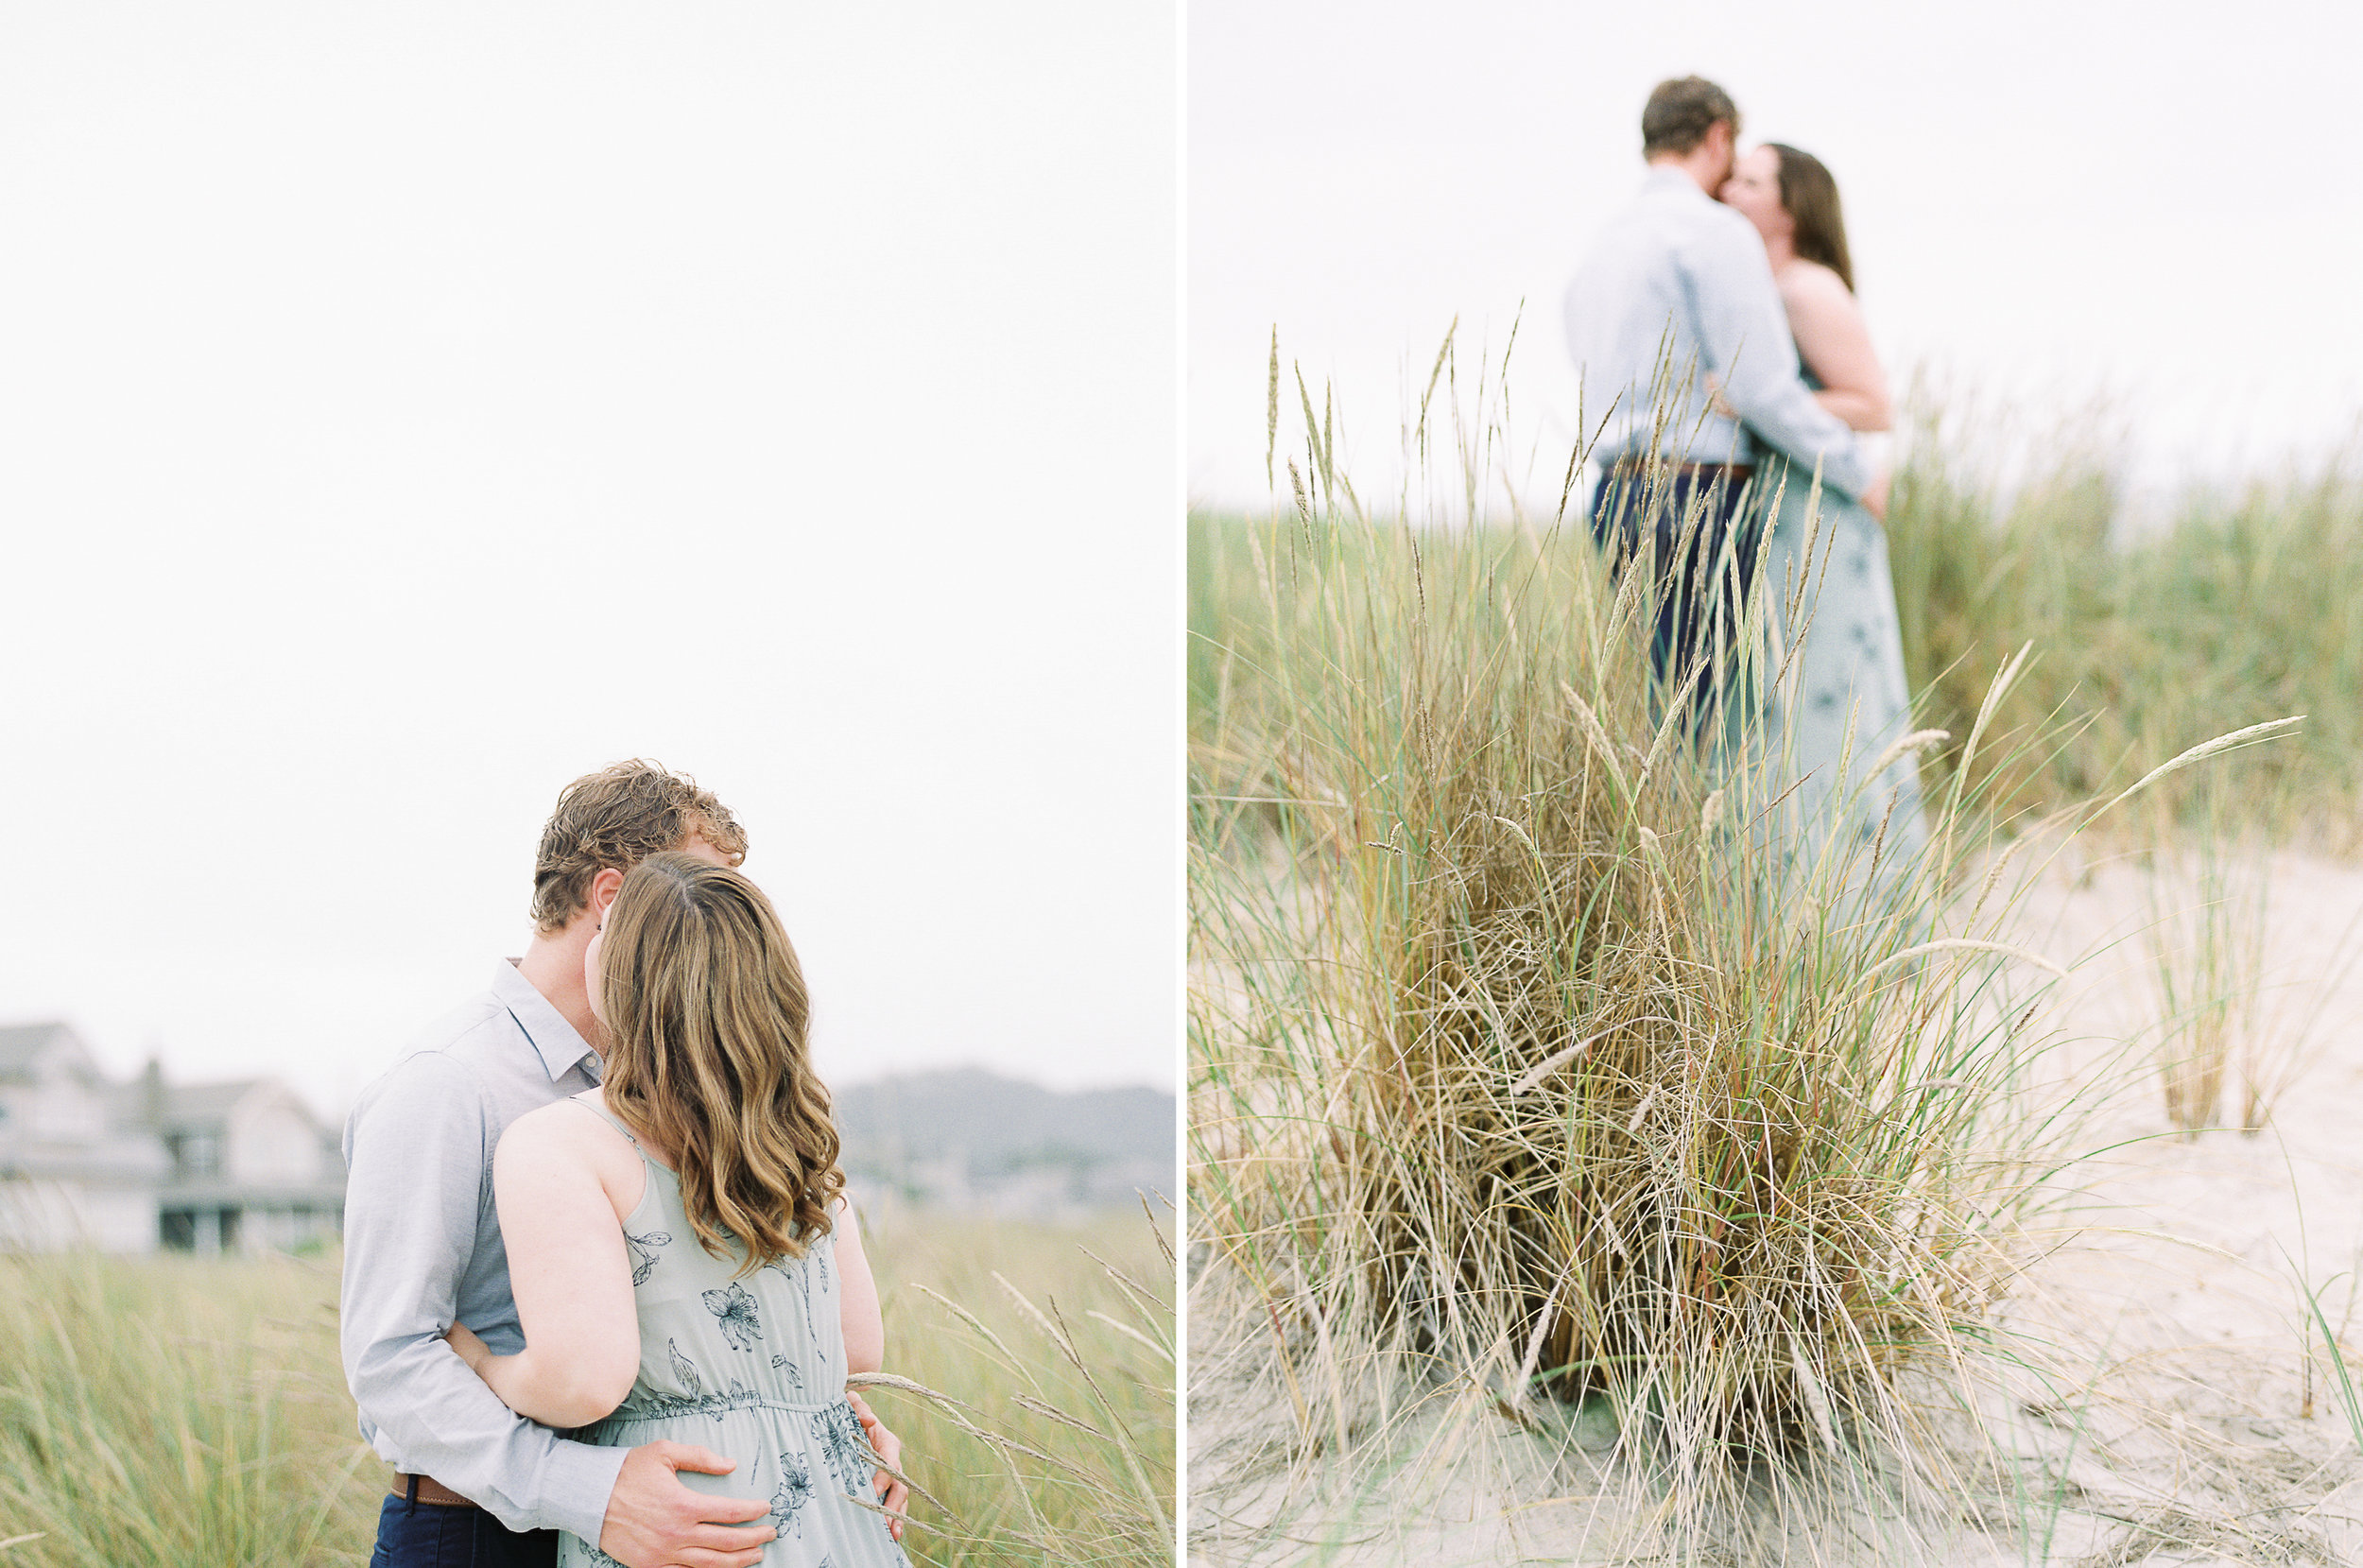 cannon-beach-oregon-engagement-session-2.jpg